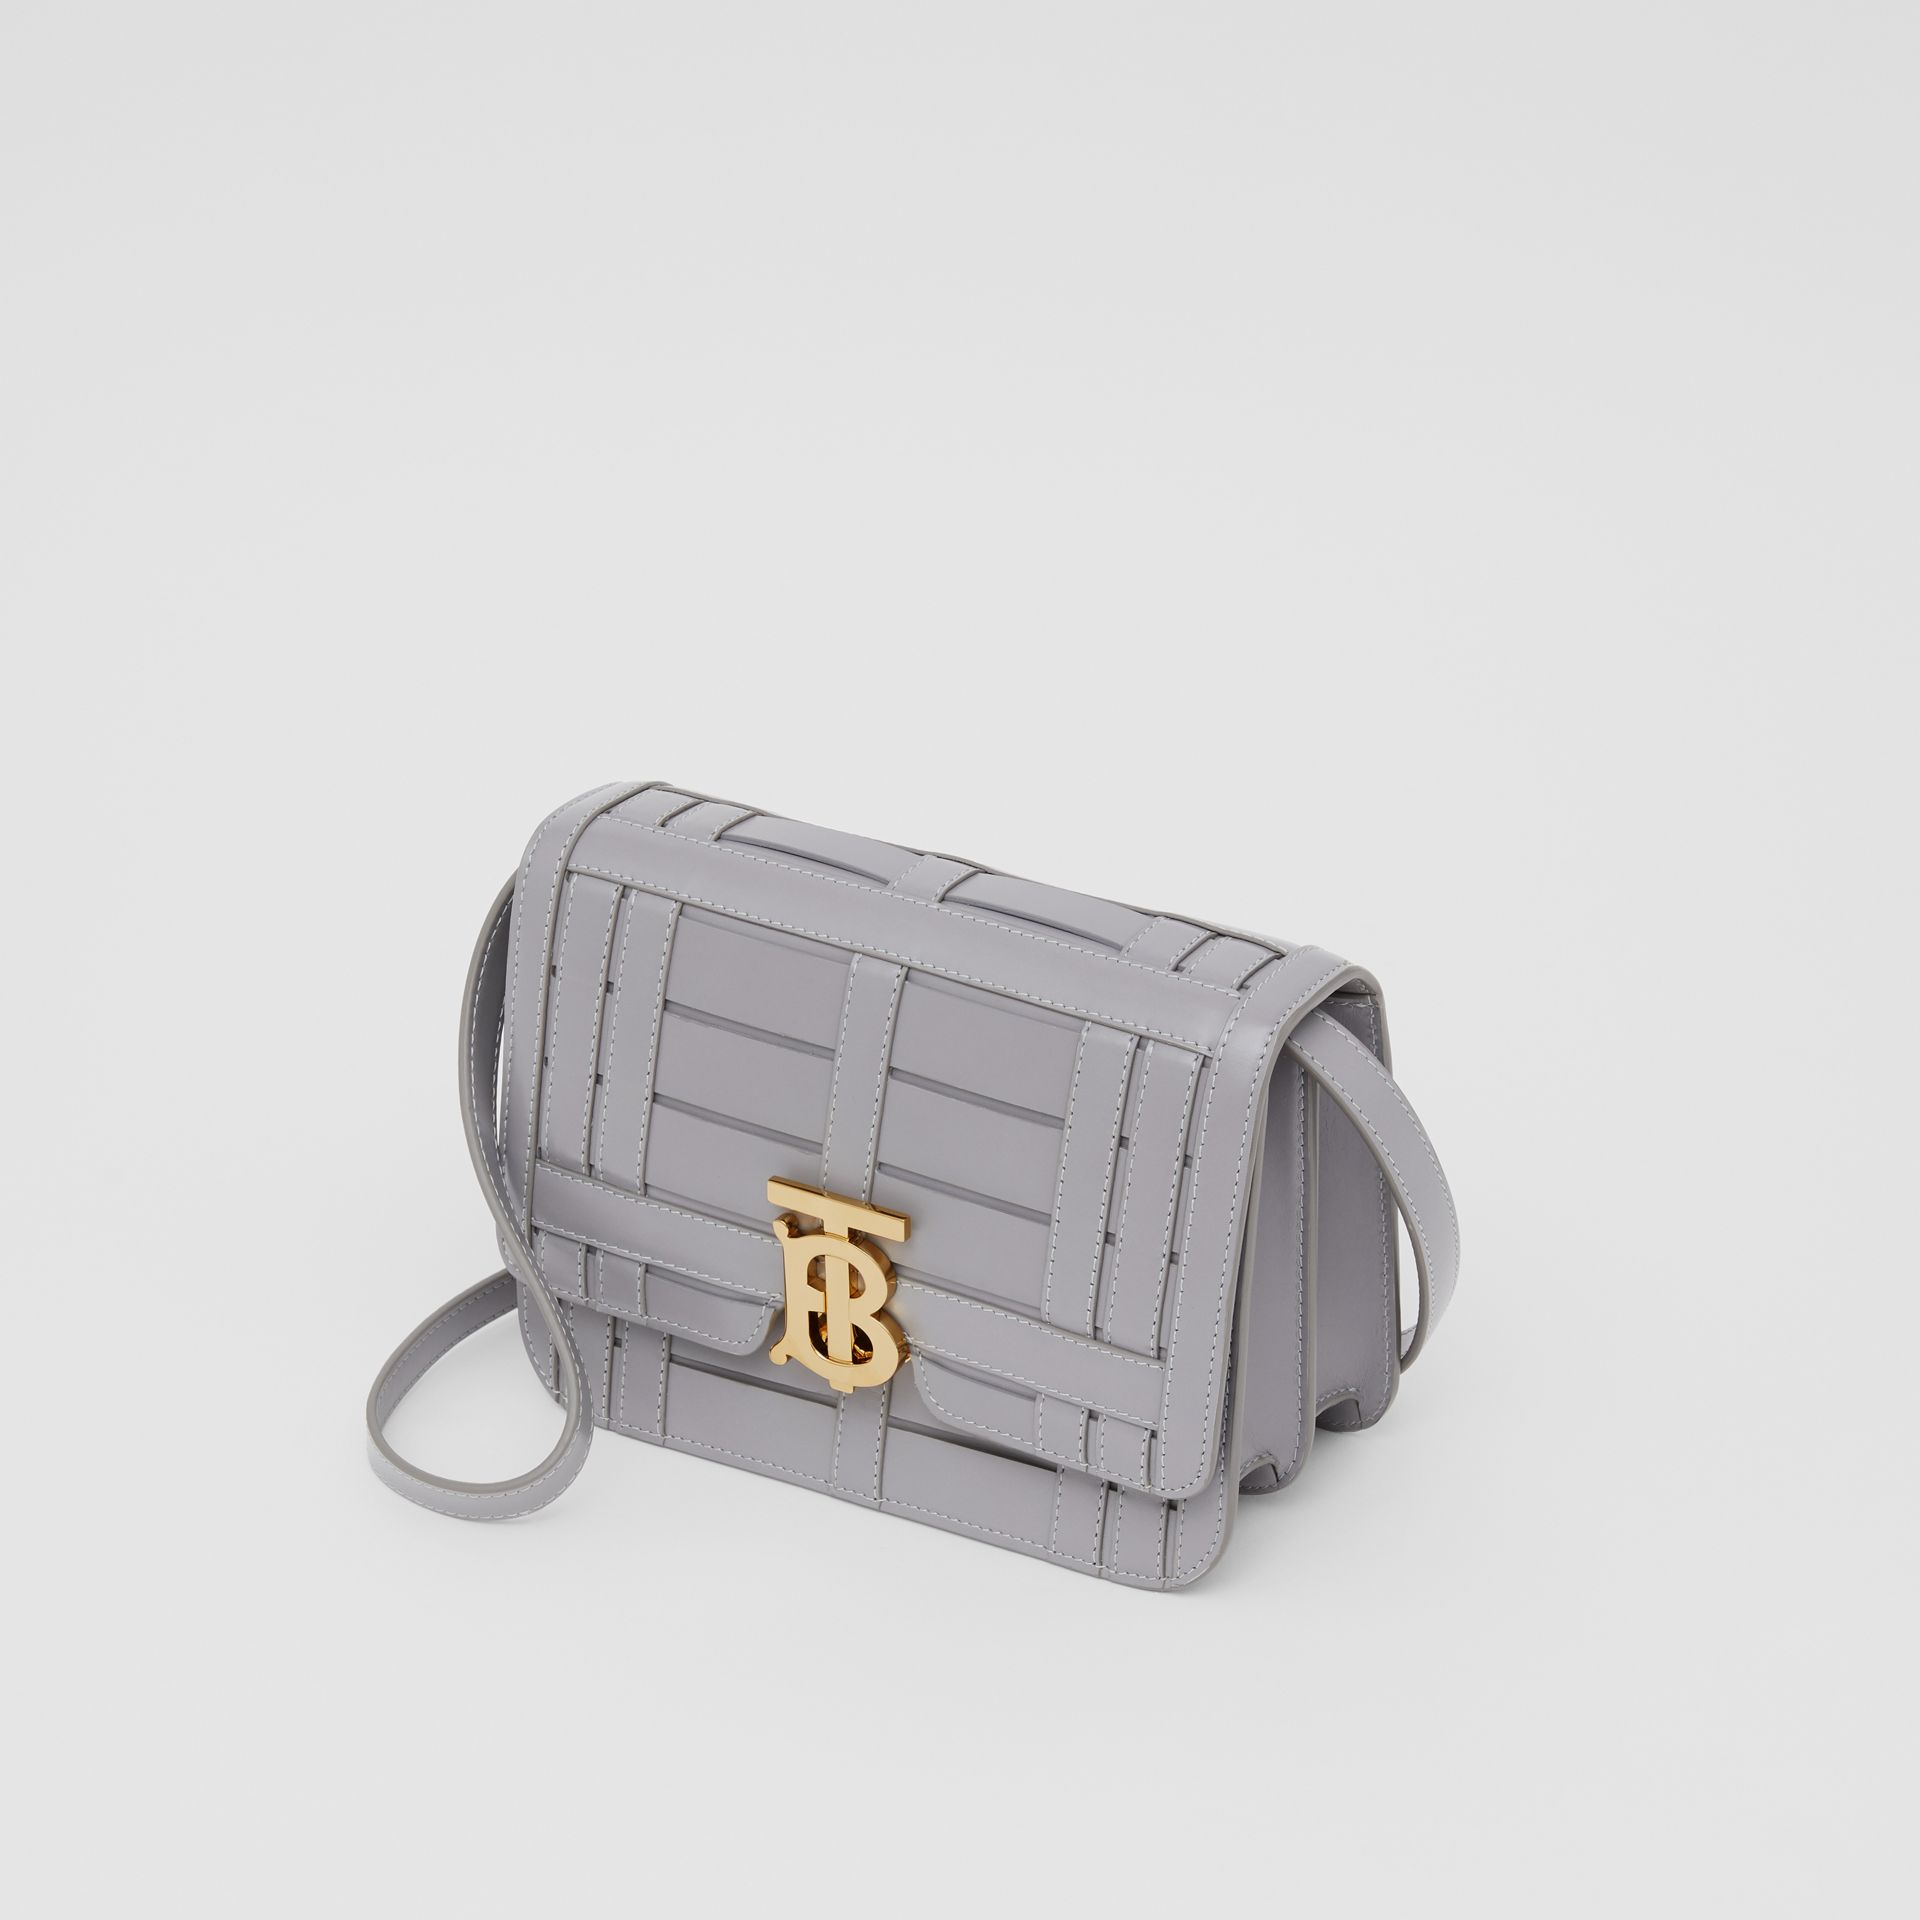 Small Woven Leather TB Bag in Cloud Grey - Women | Burberry - gallery image 3